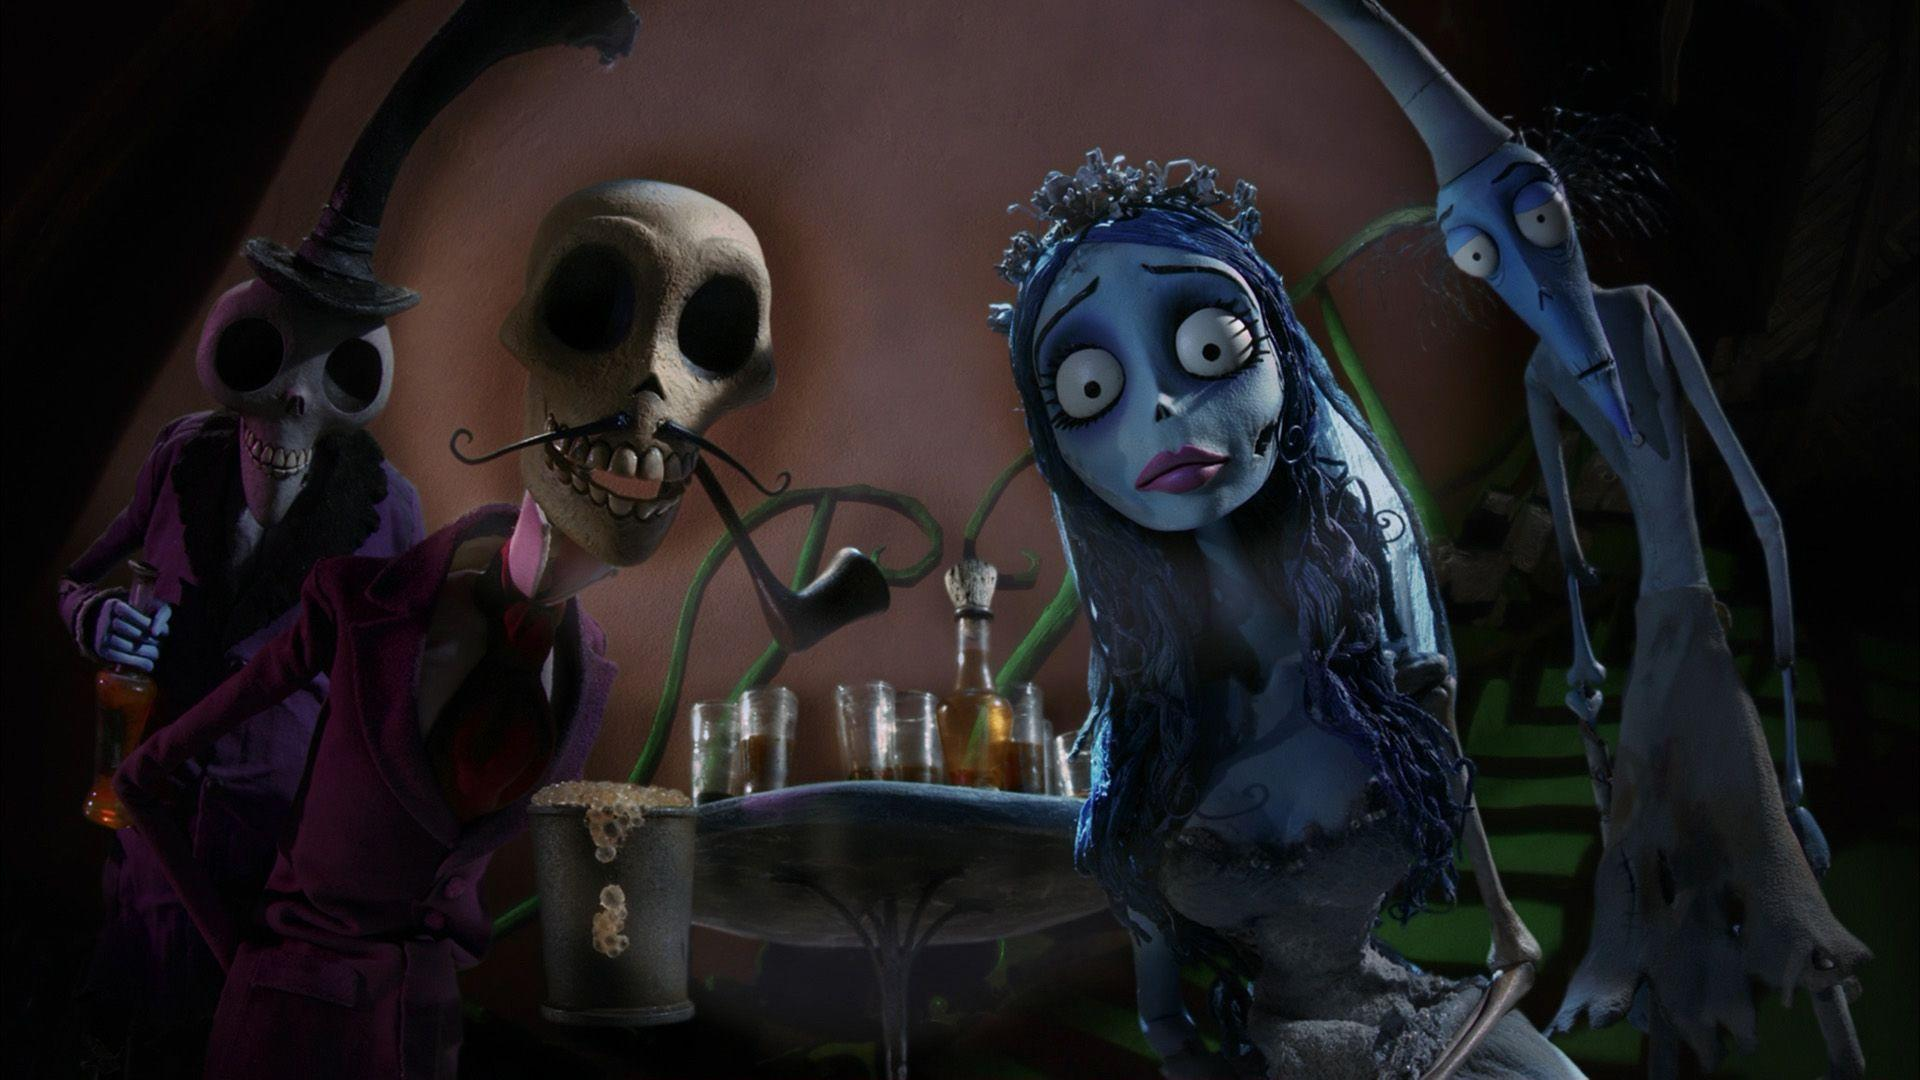 corpse bride movie wallpapers - photo #3